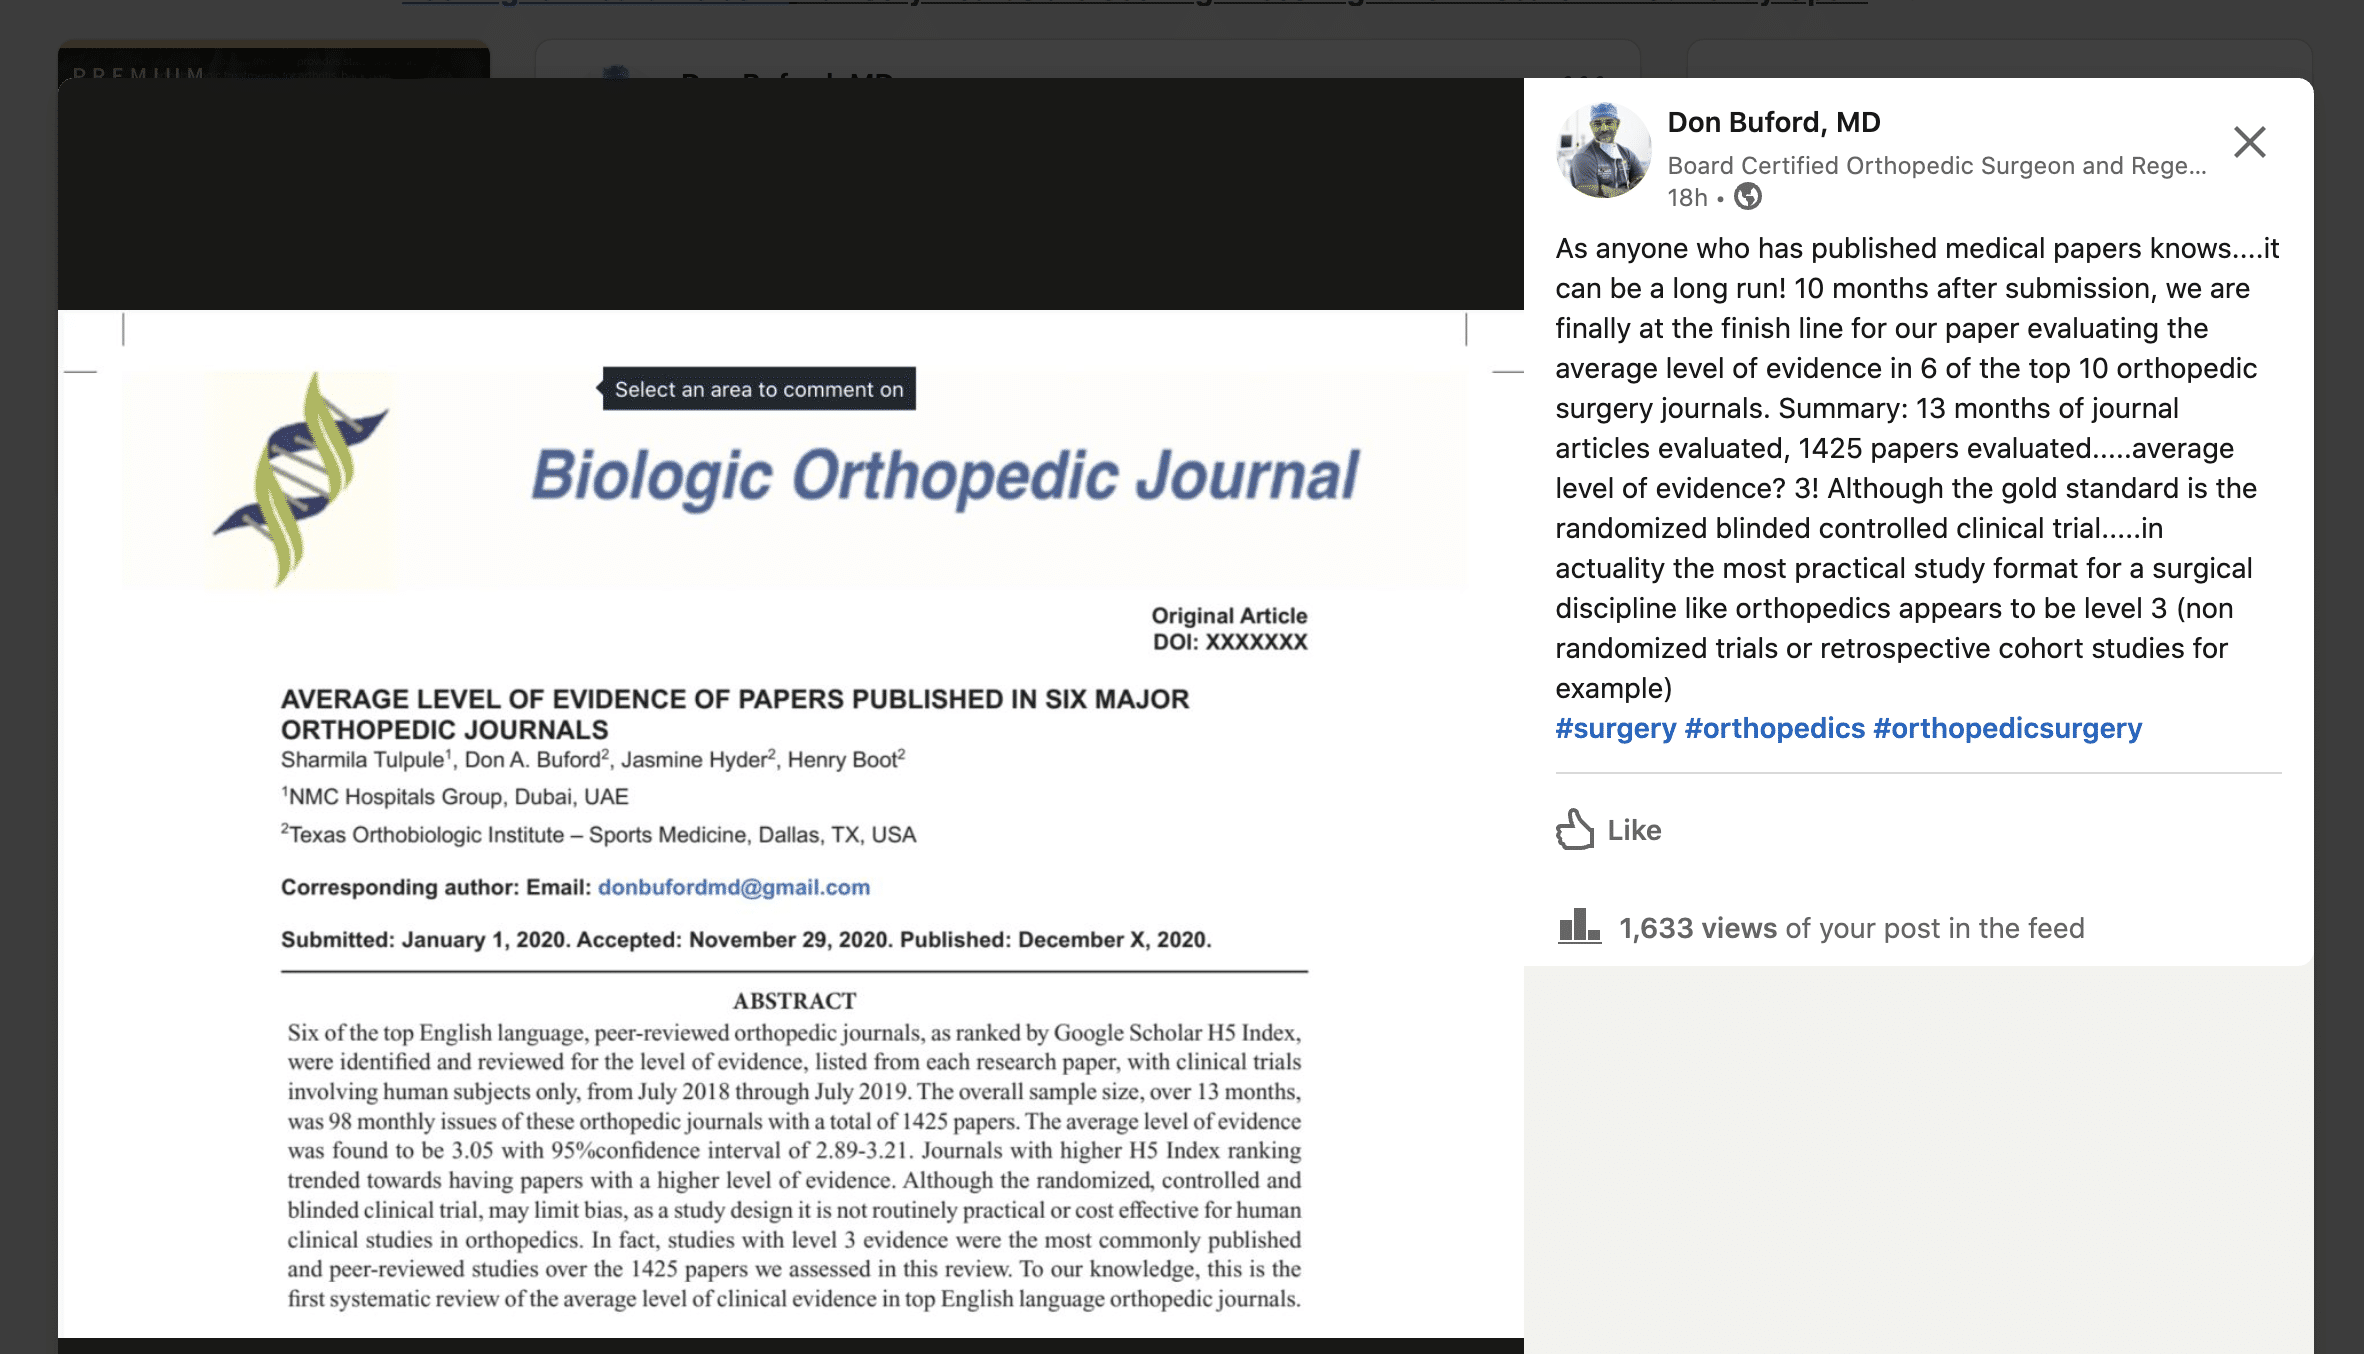 Our Most Recent Paper Will Be Published This Month!